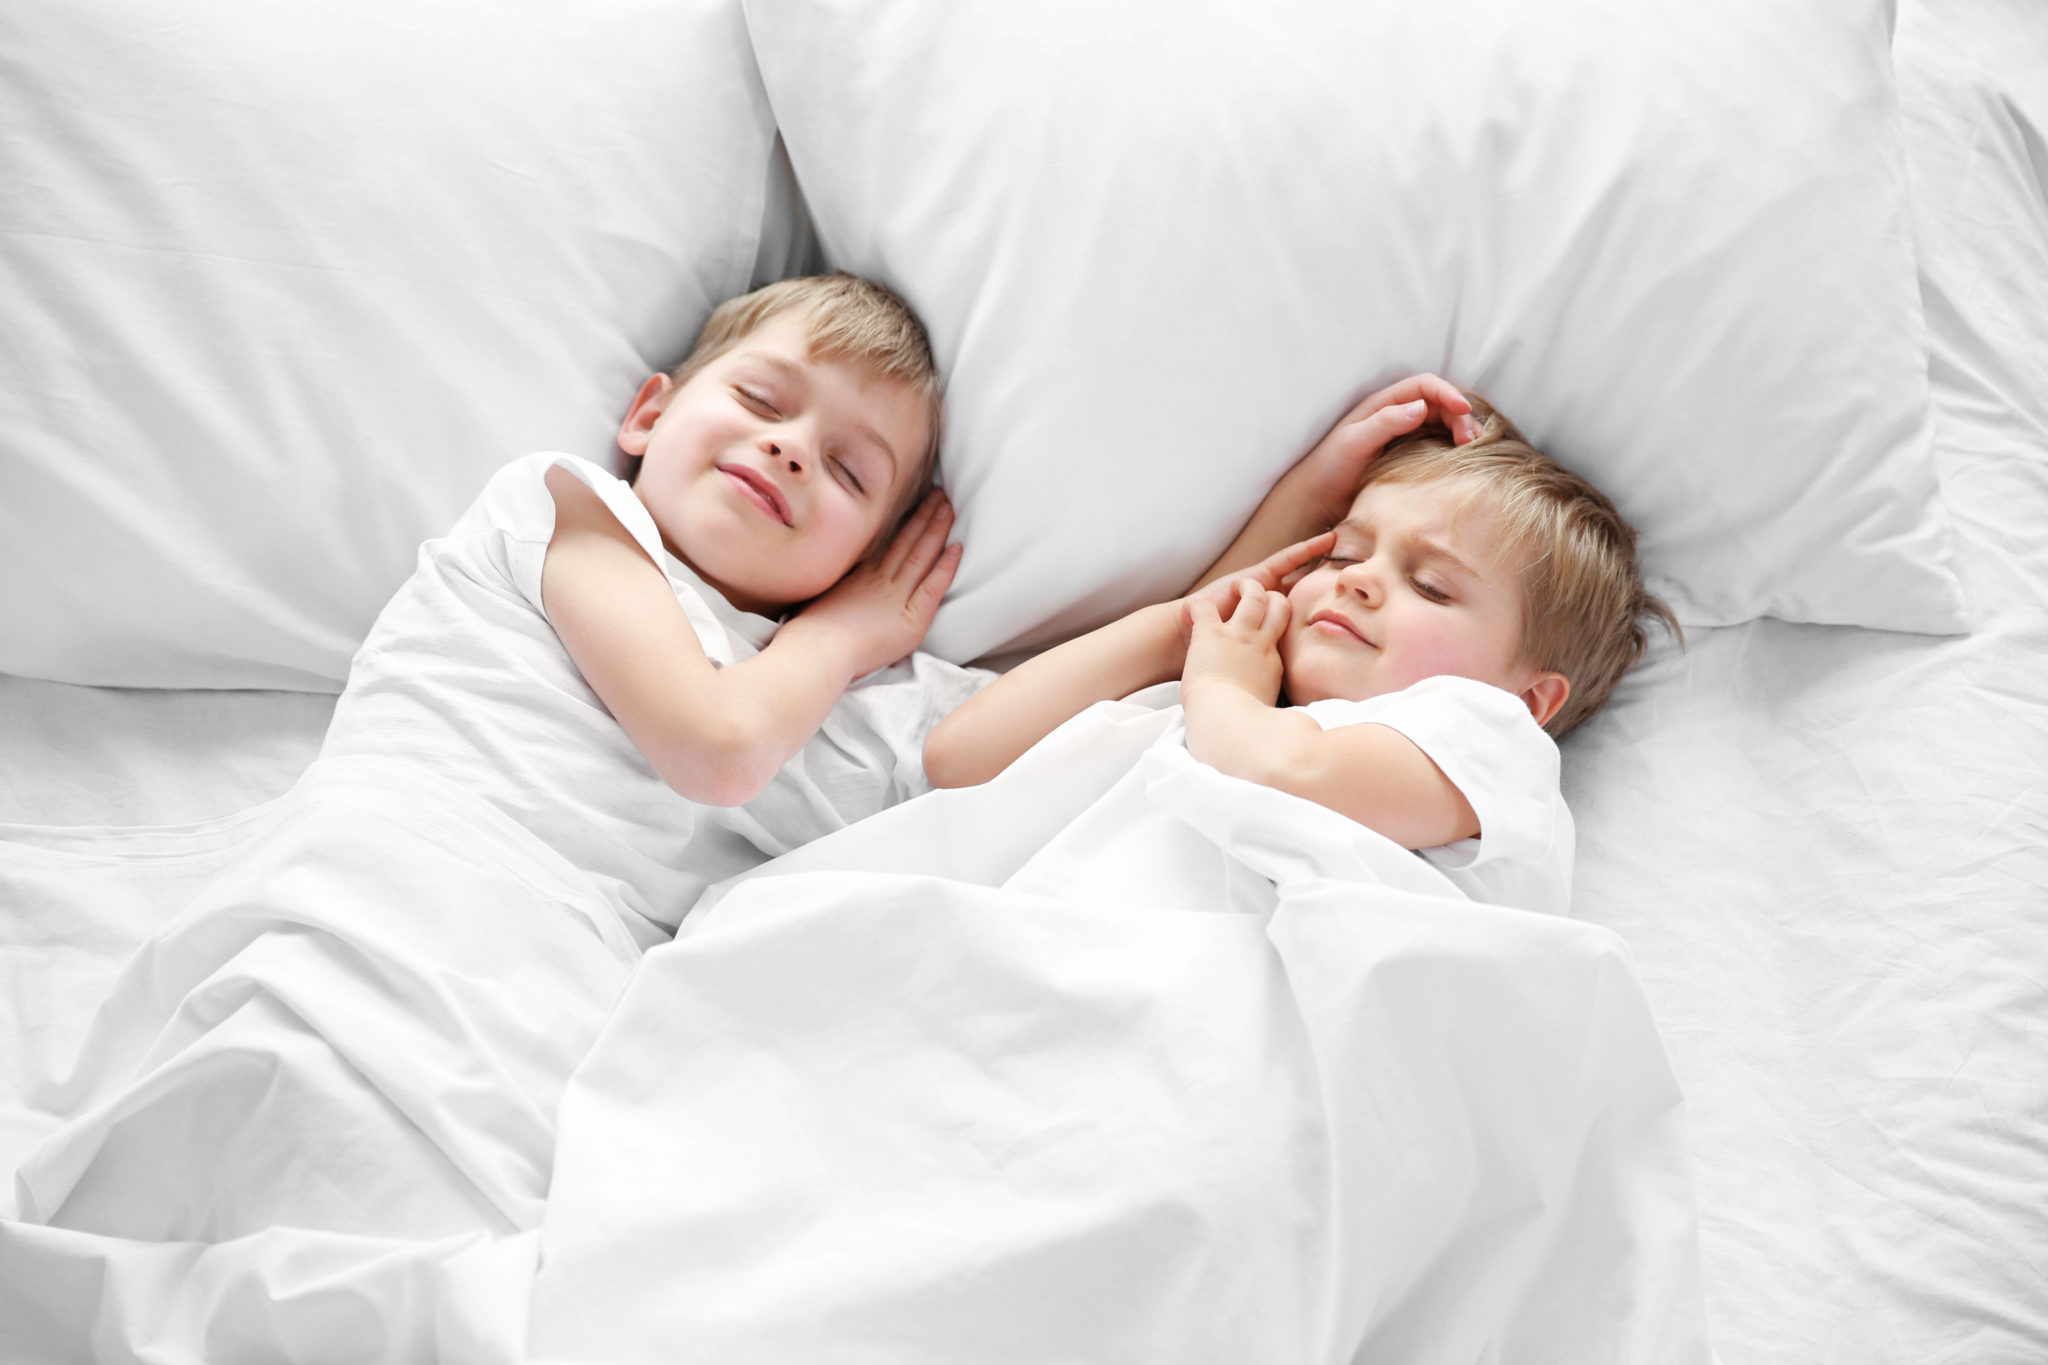 Kids Sleeping in Bedroom